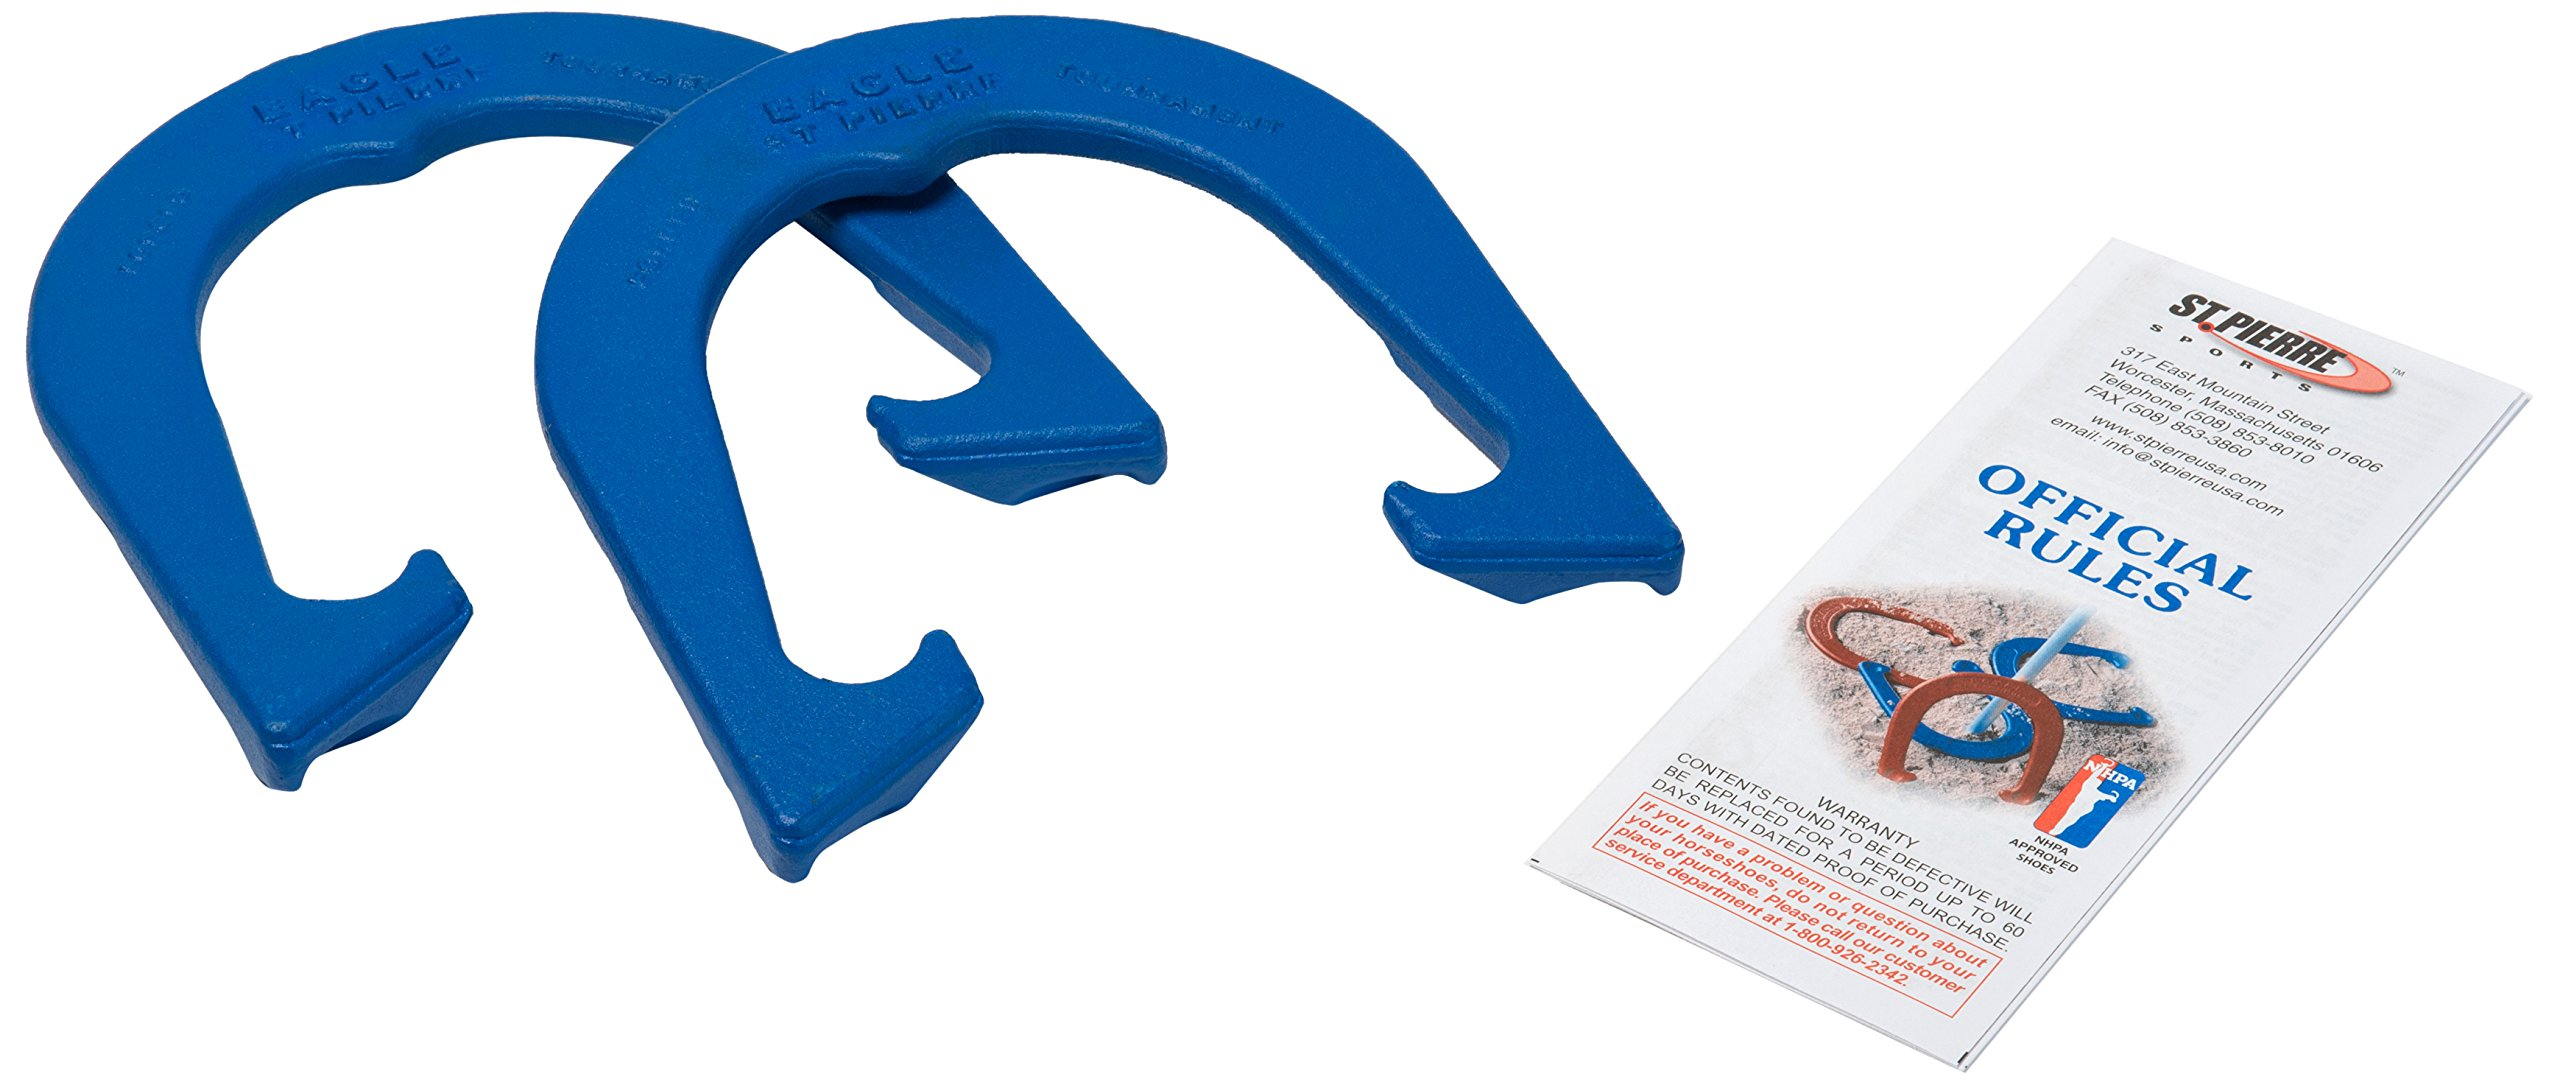 St Pierre Sports Eagle Tournament Horseshoe (1-Pair), Blue by St Pierre Sports